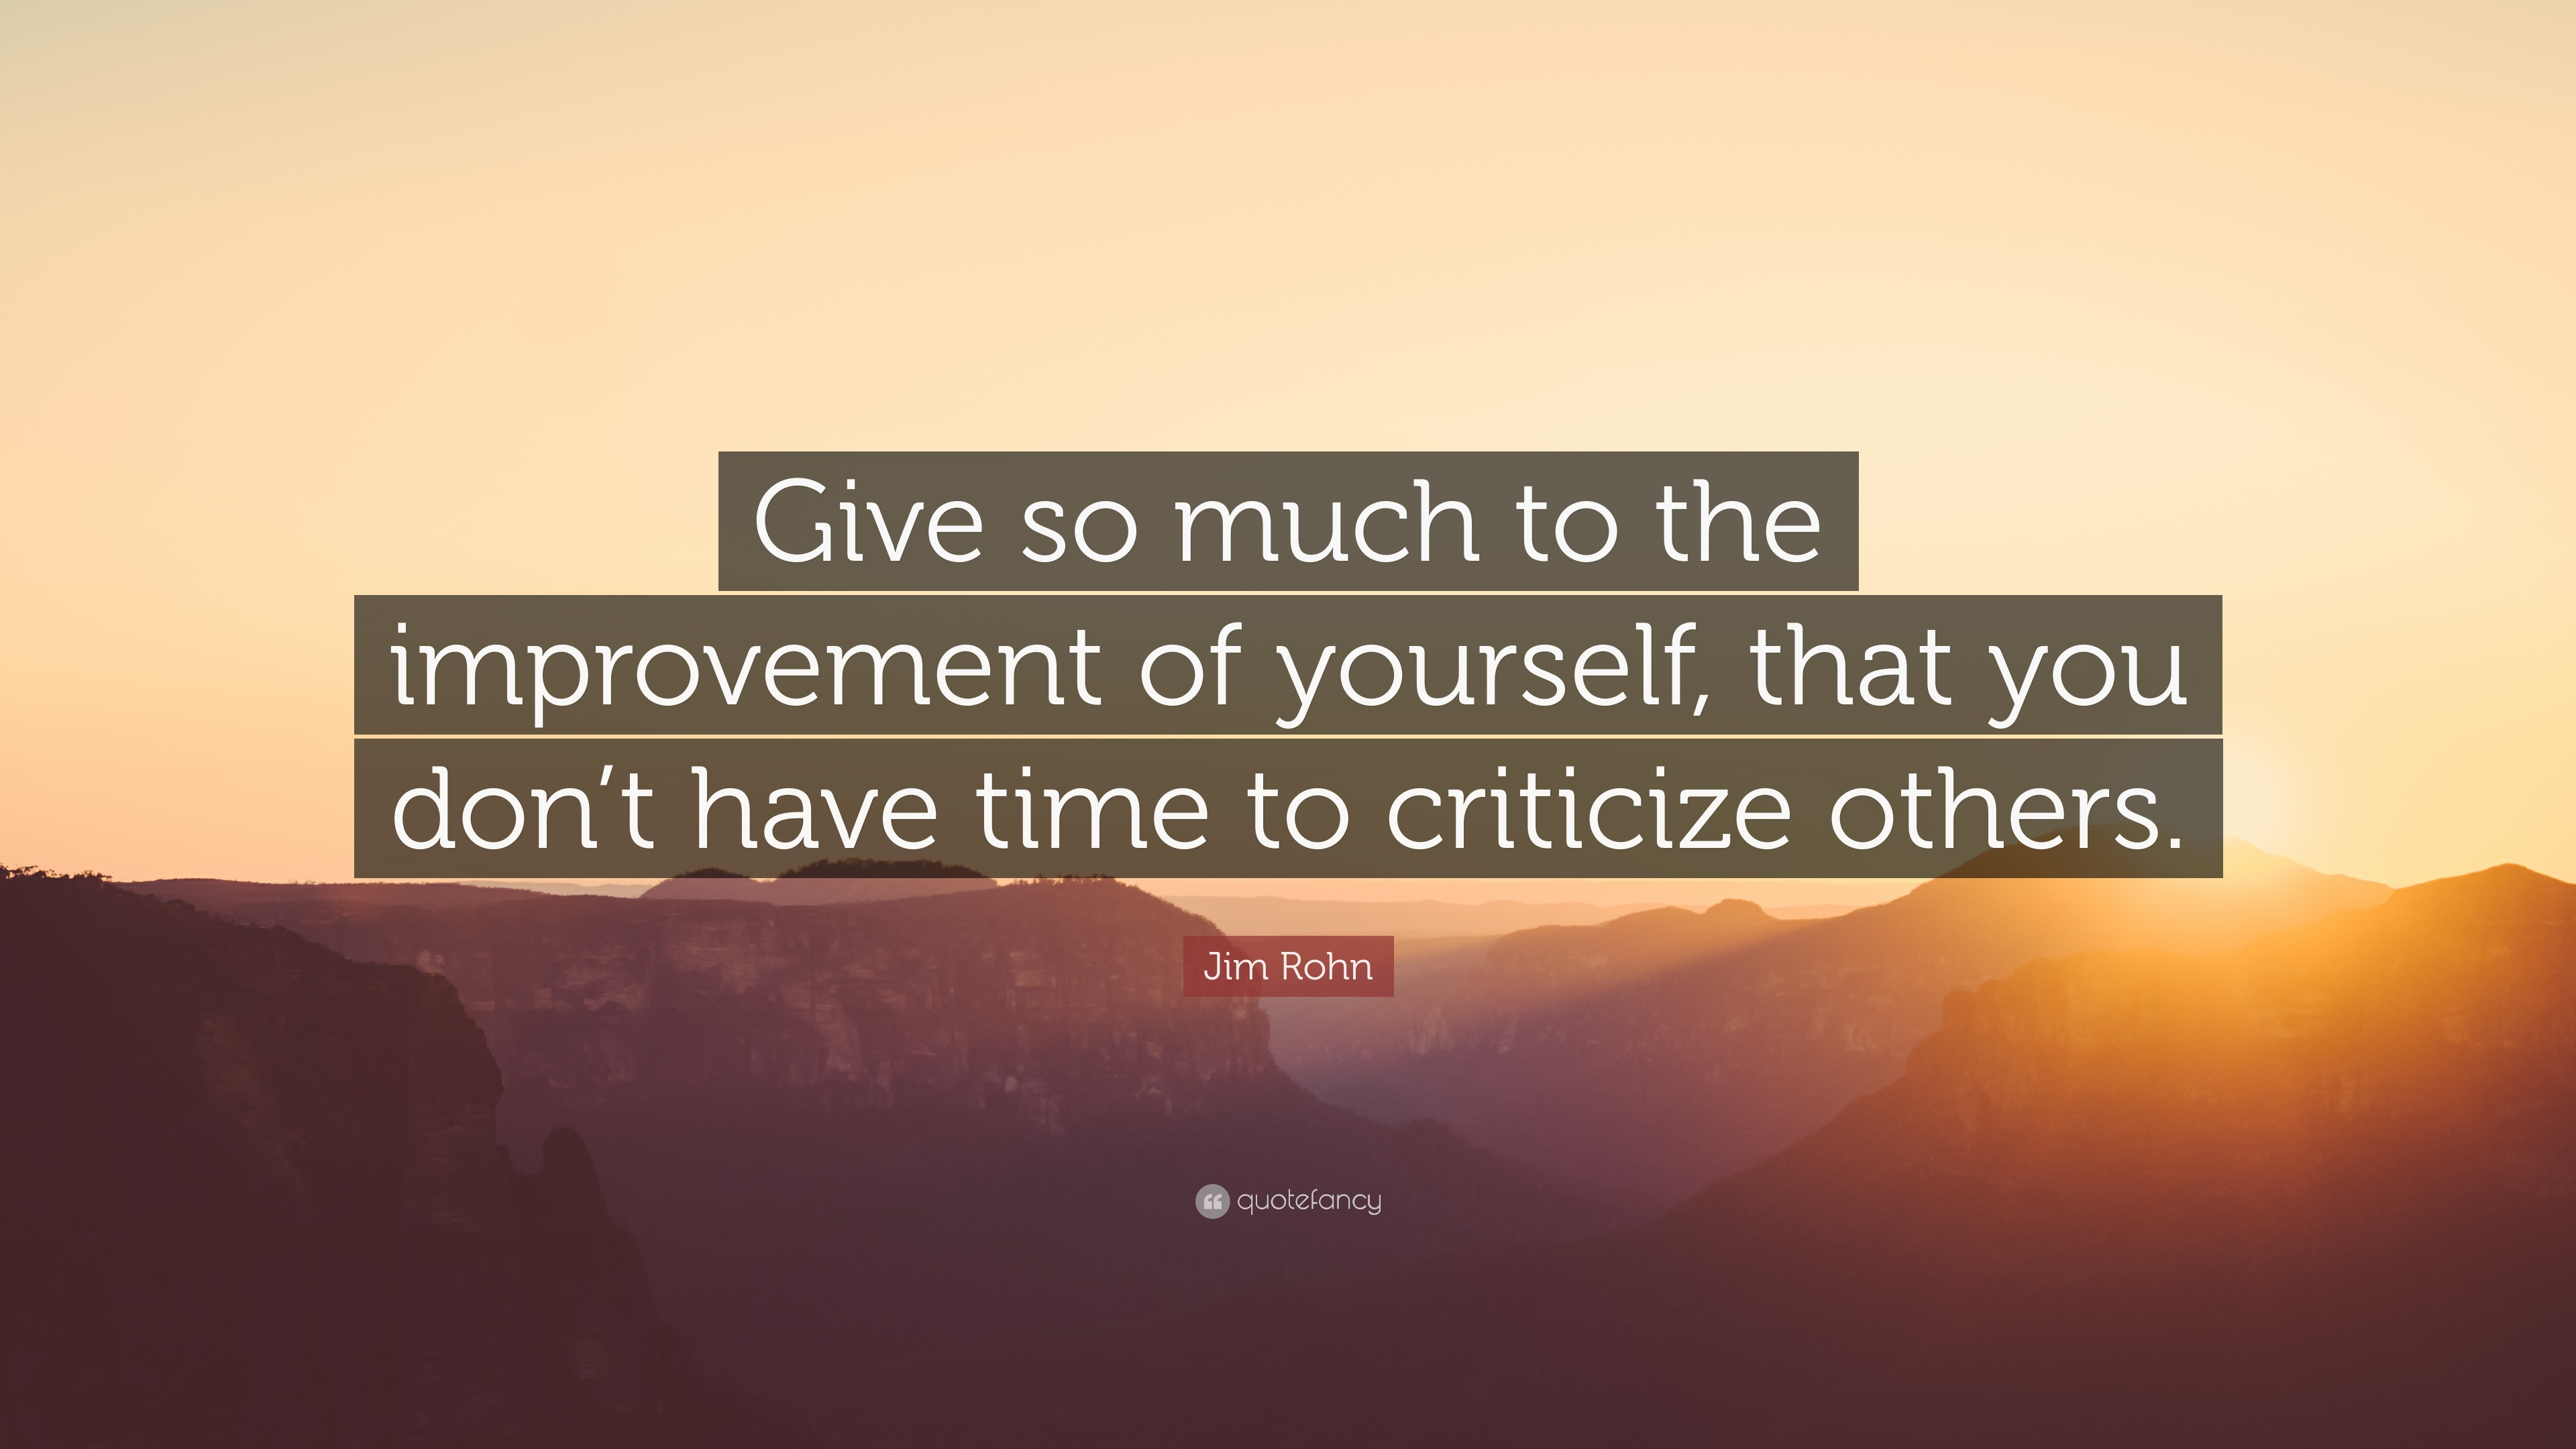 Beautiful Jim Rohn Quote: U201cGive So Much To The Improvement Of Yourself, That You